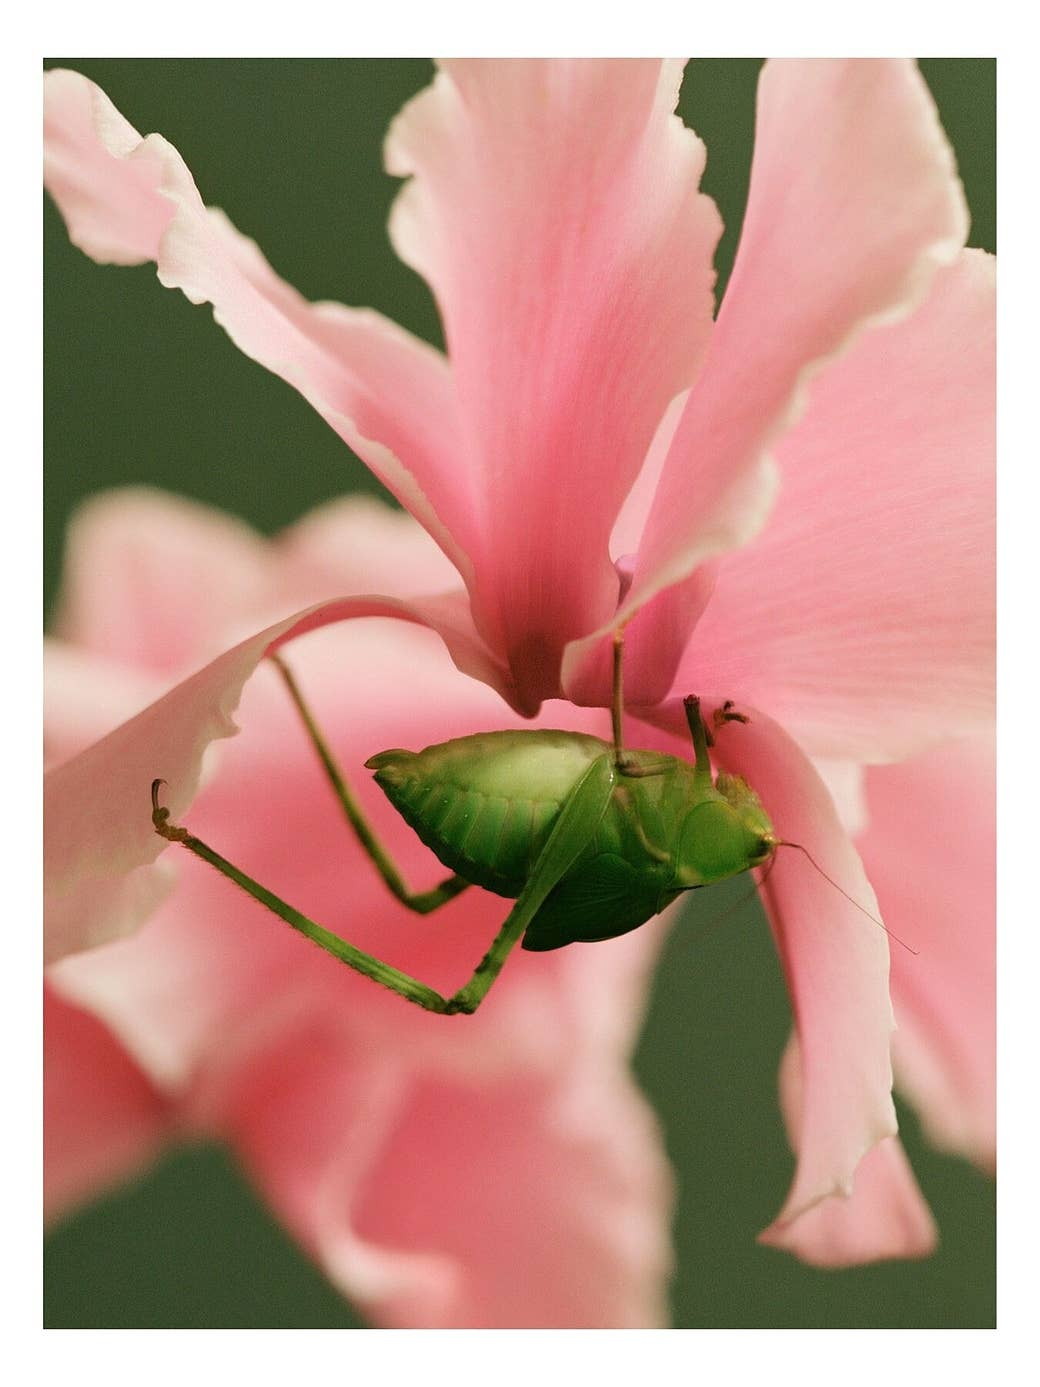 A grasshopper holding on to a flower upside down